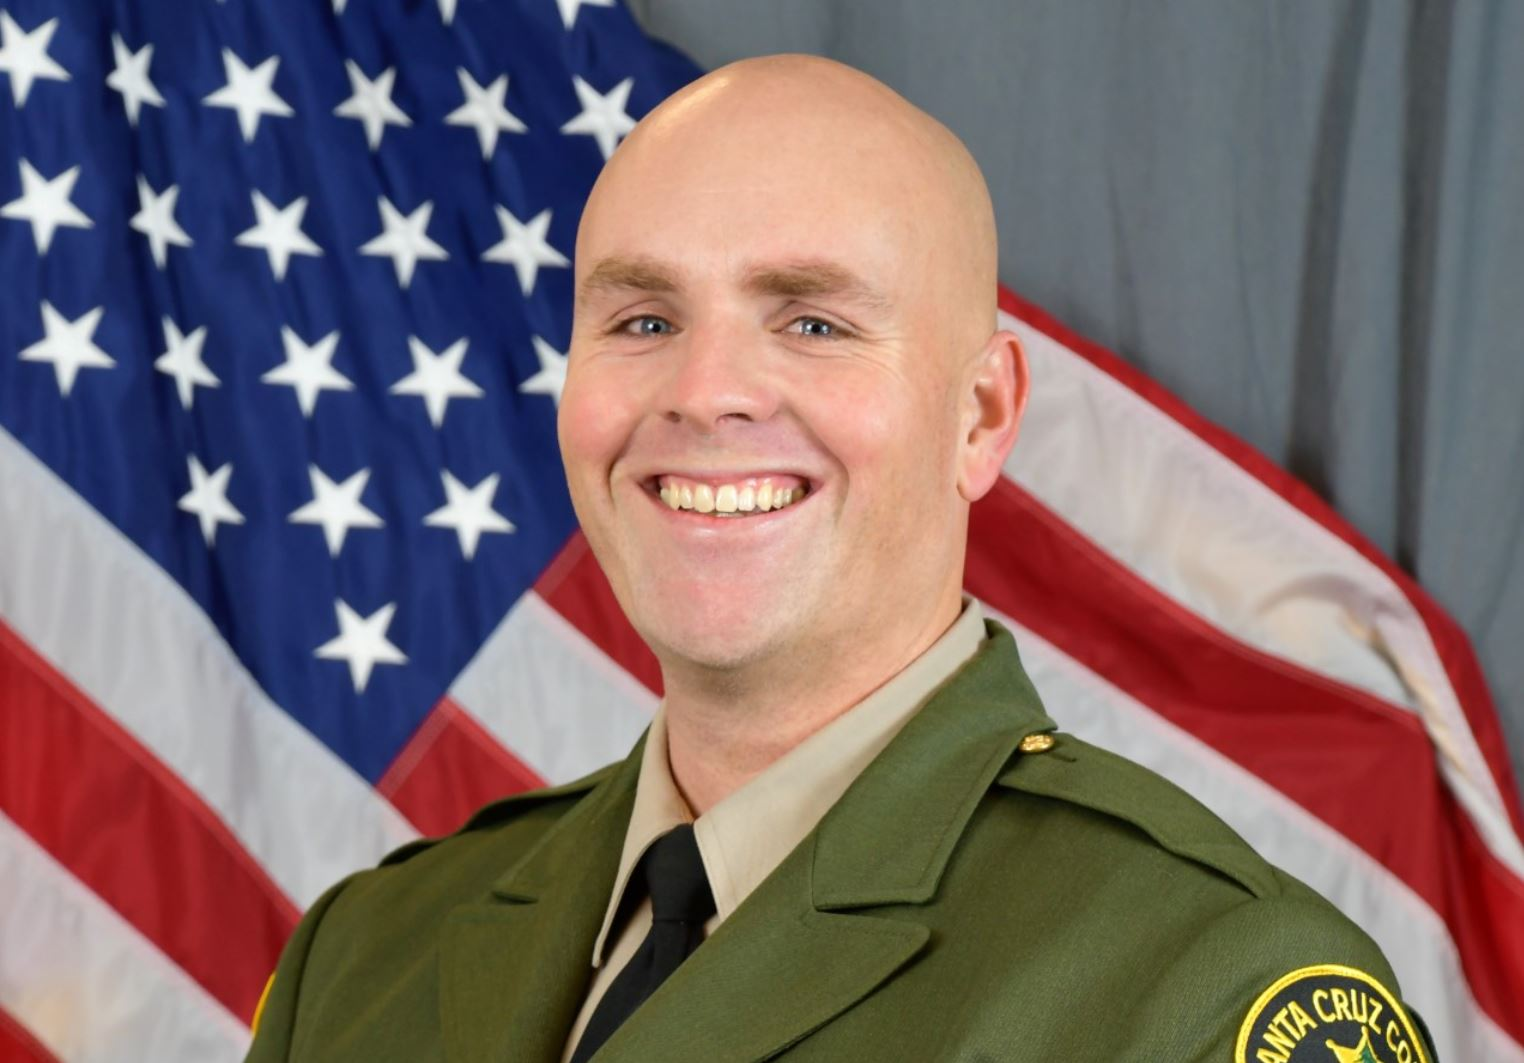 Deputy killed, another wounded in shooting in northern California